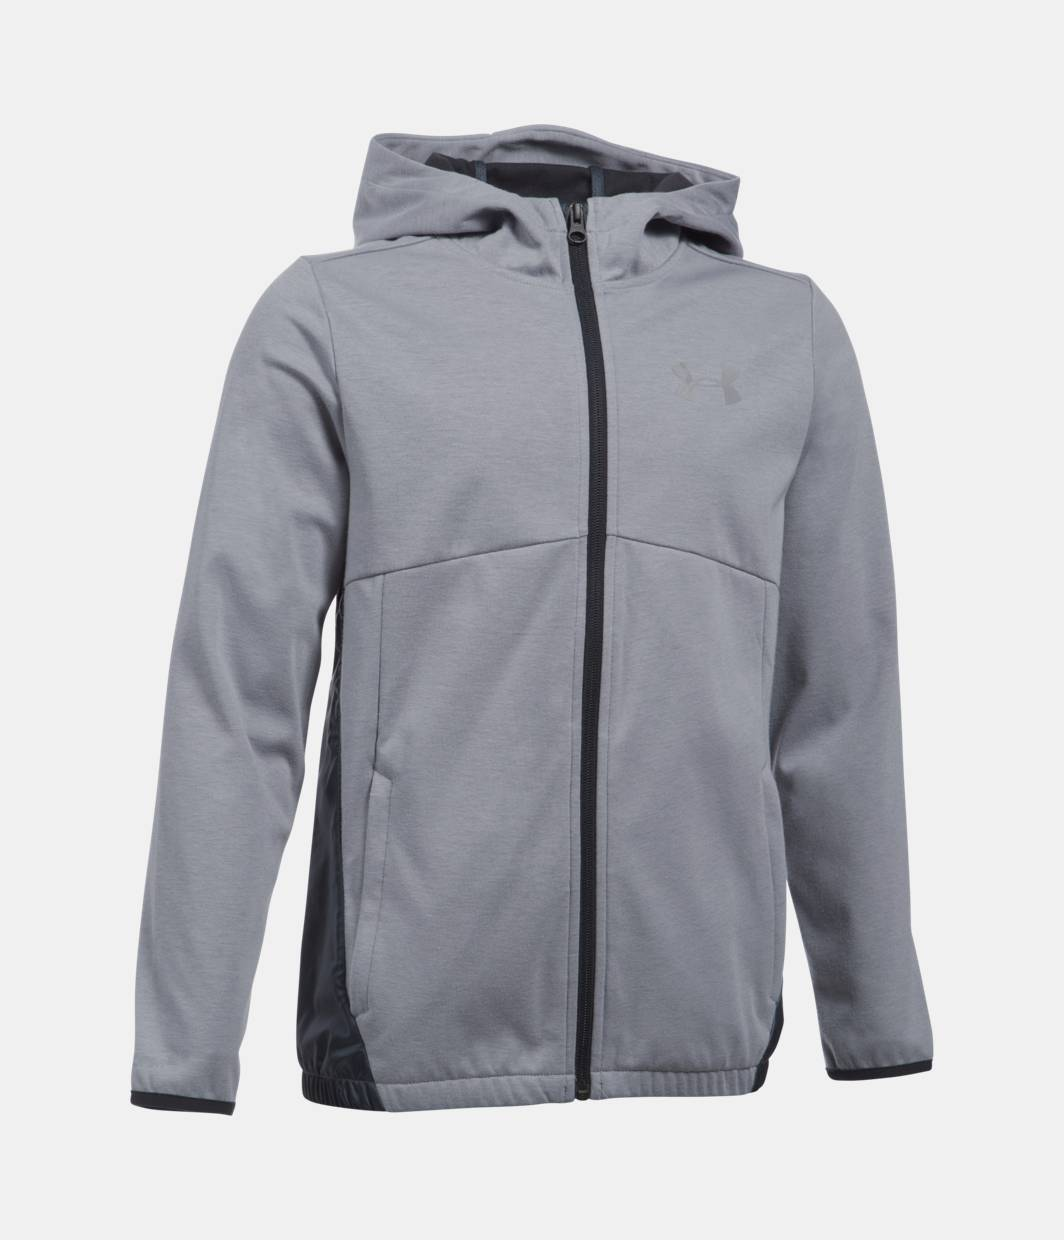 Hoodies, Sweatshirts, & Pullovers | Under Armour US